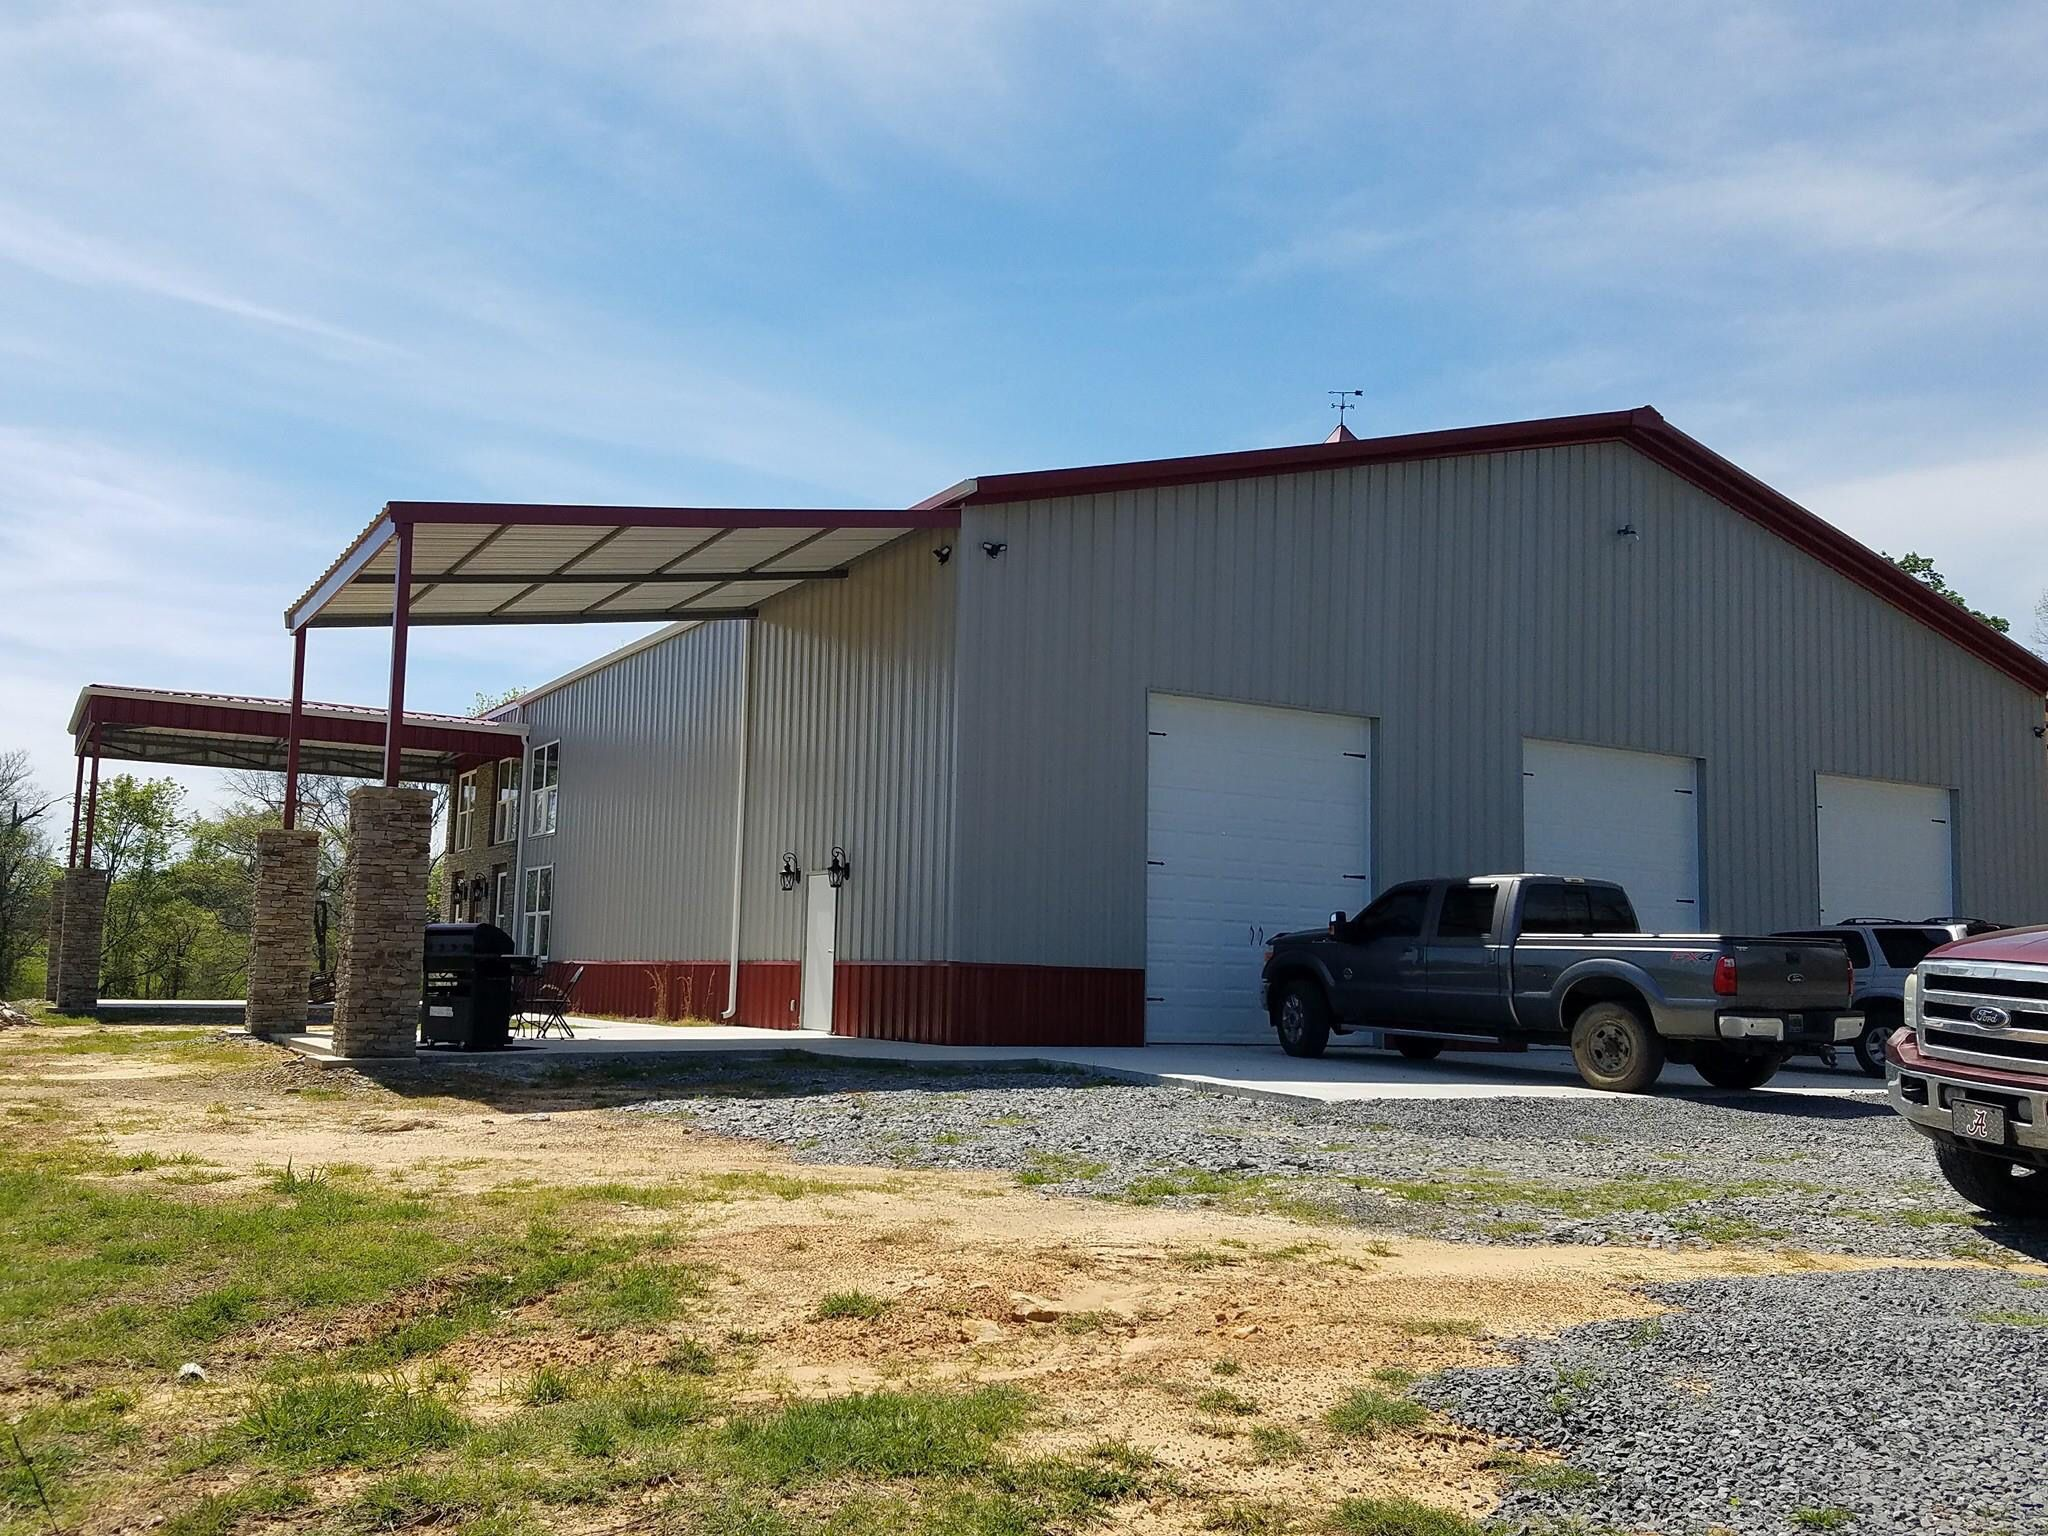 Bama Steel Structures | Steel structure, Structures, Steel ...